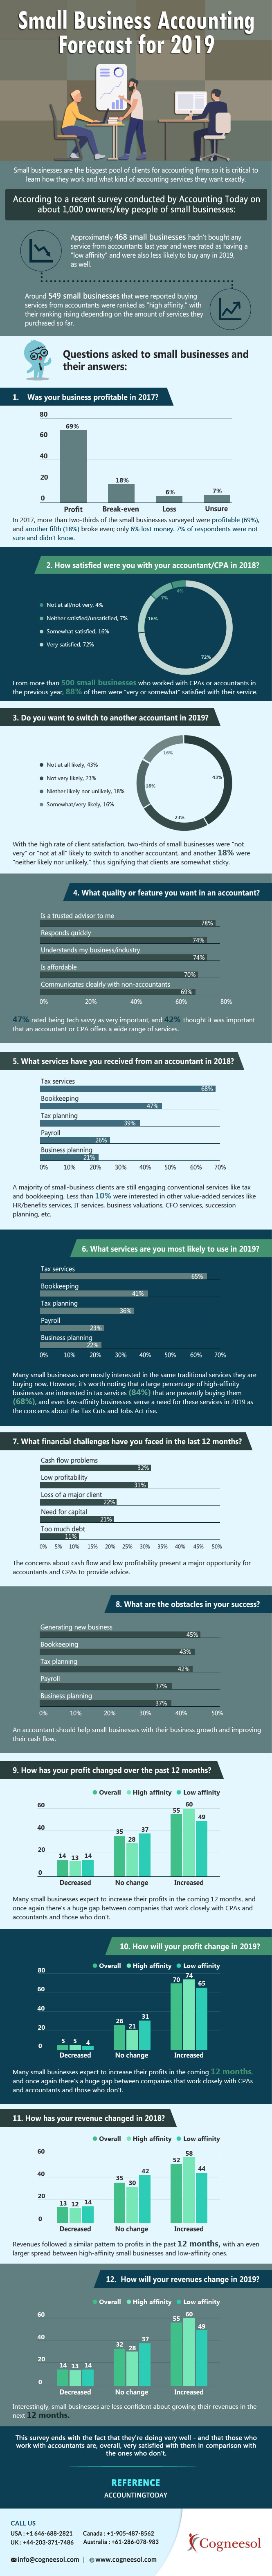 Small Business Accounting Forecast for 2019 – Infographic